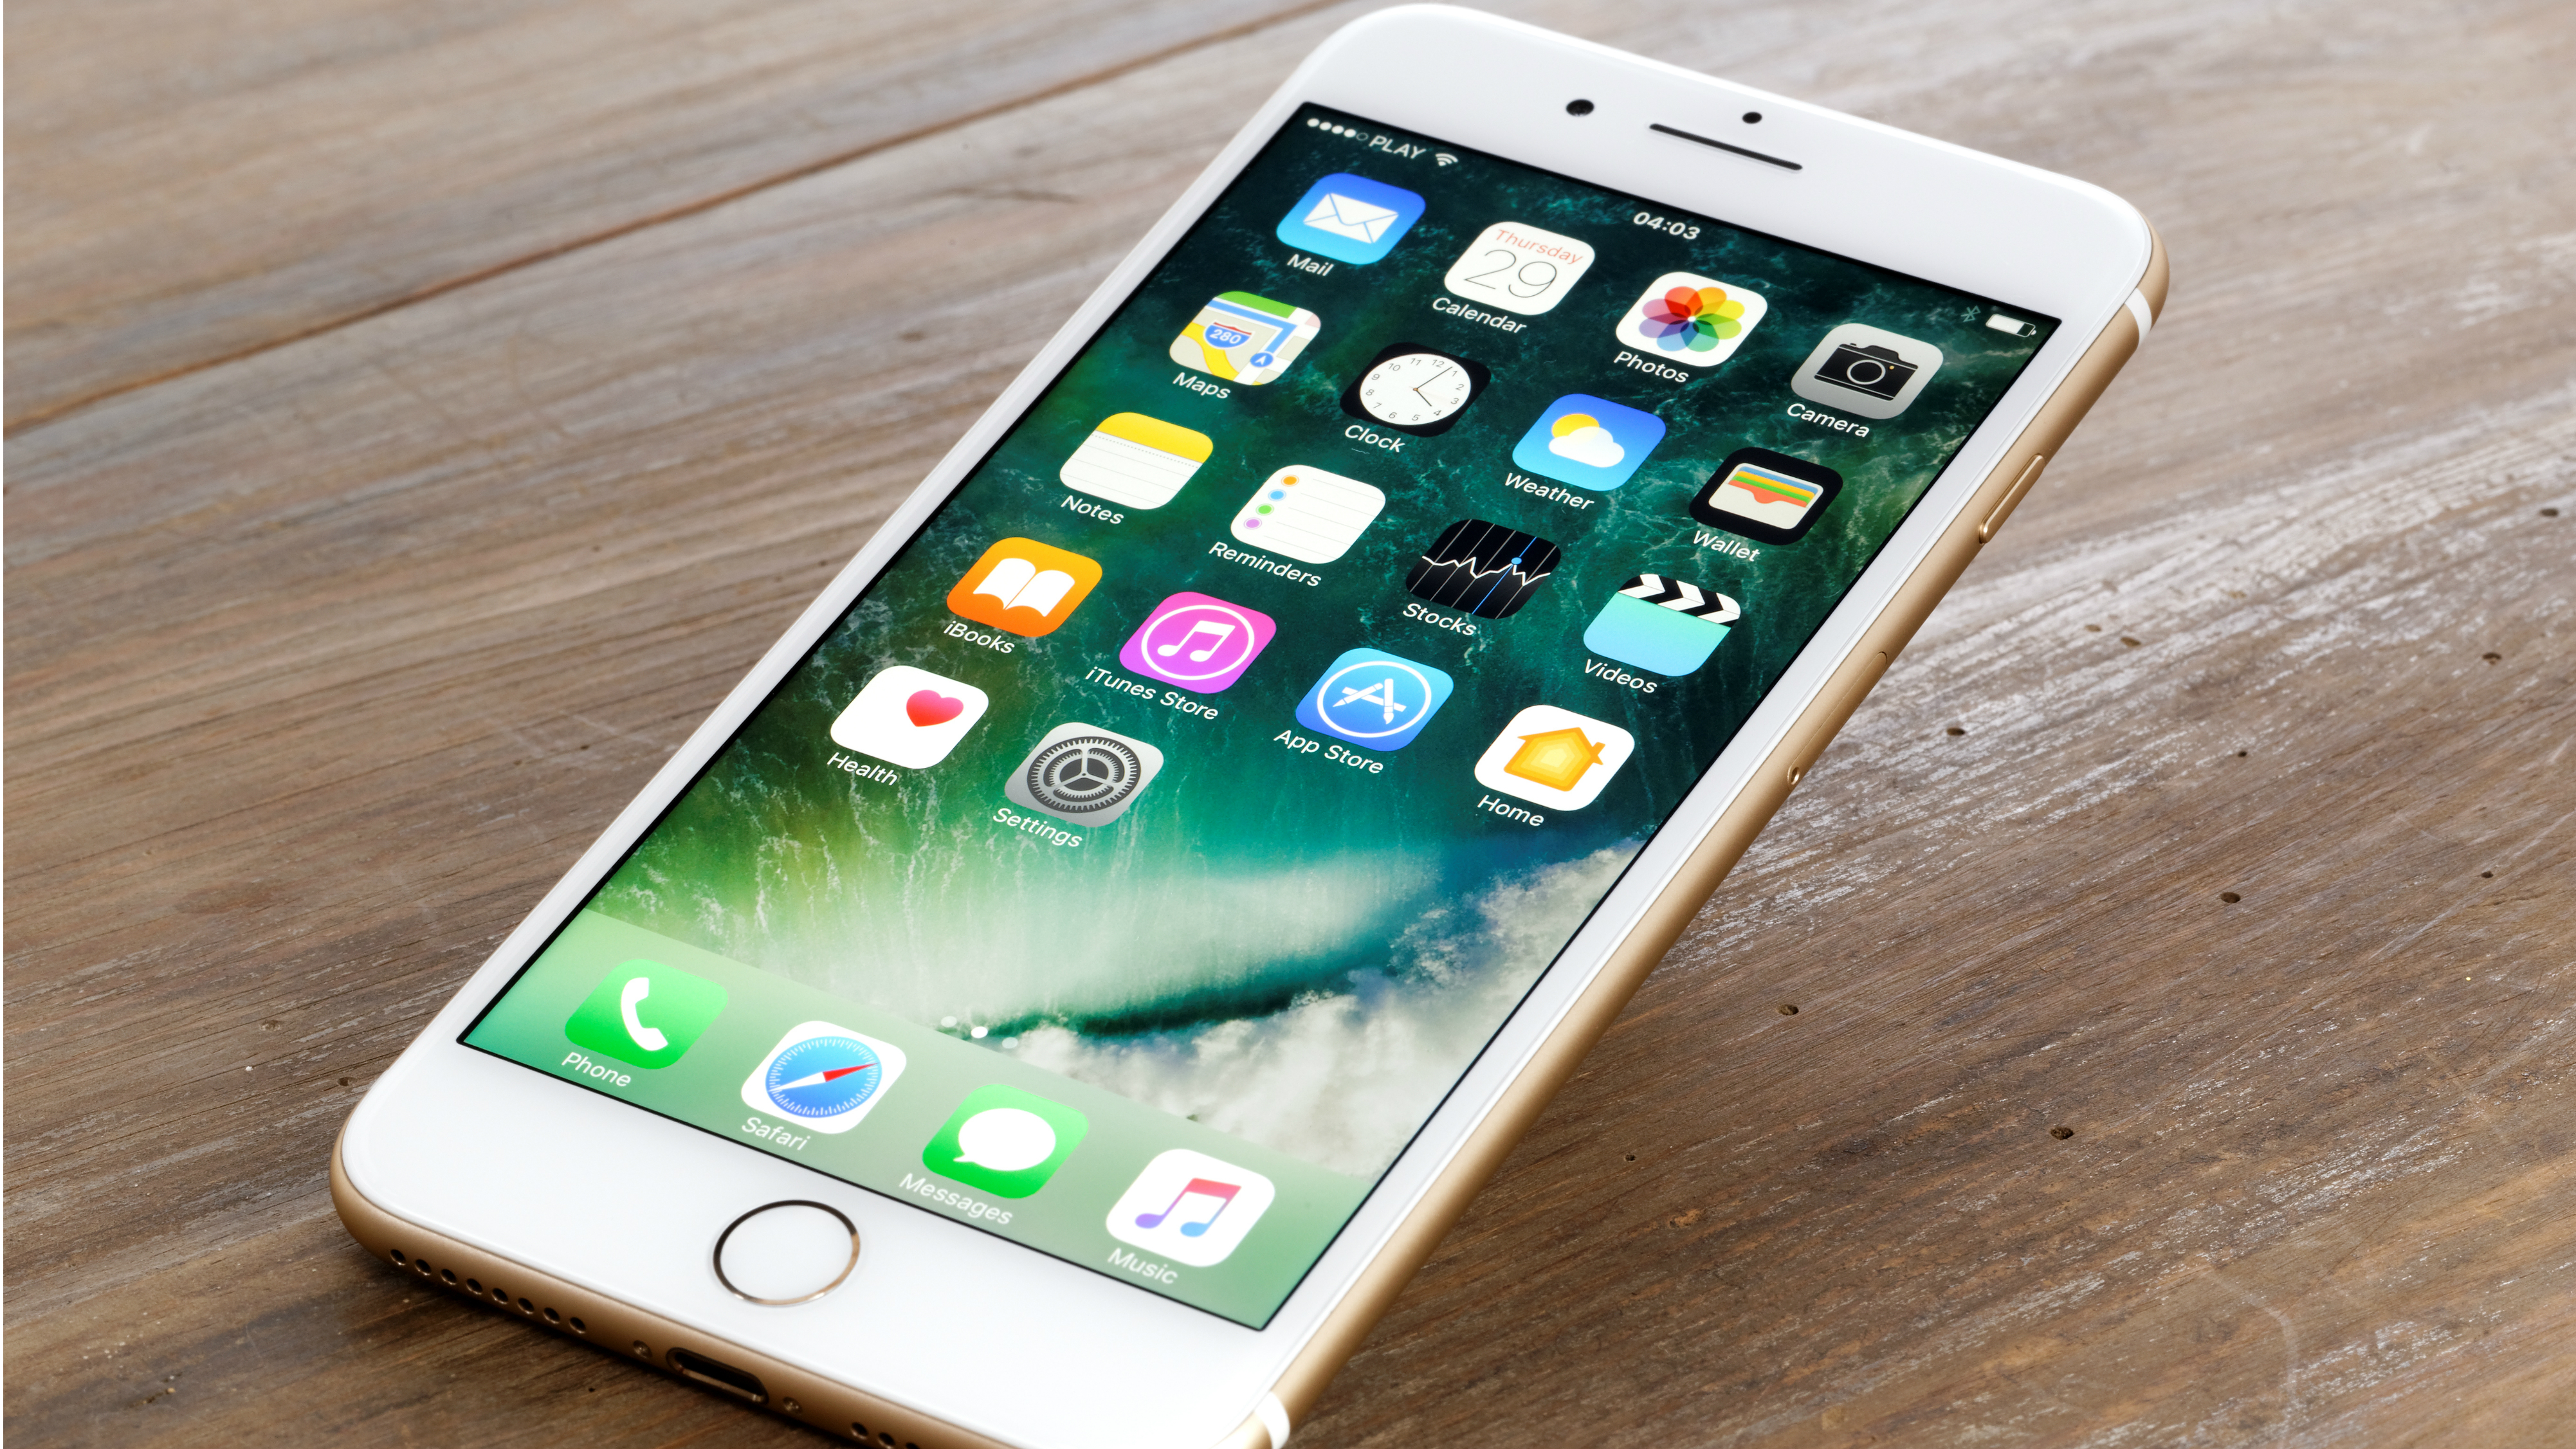 online retailer 5bee2 3d5f7 The iPhone 7 gets a massive price cut at Amazon | TechRadar